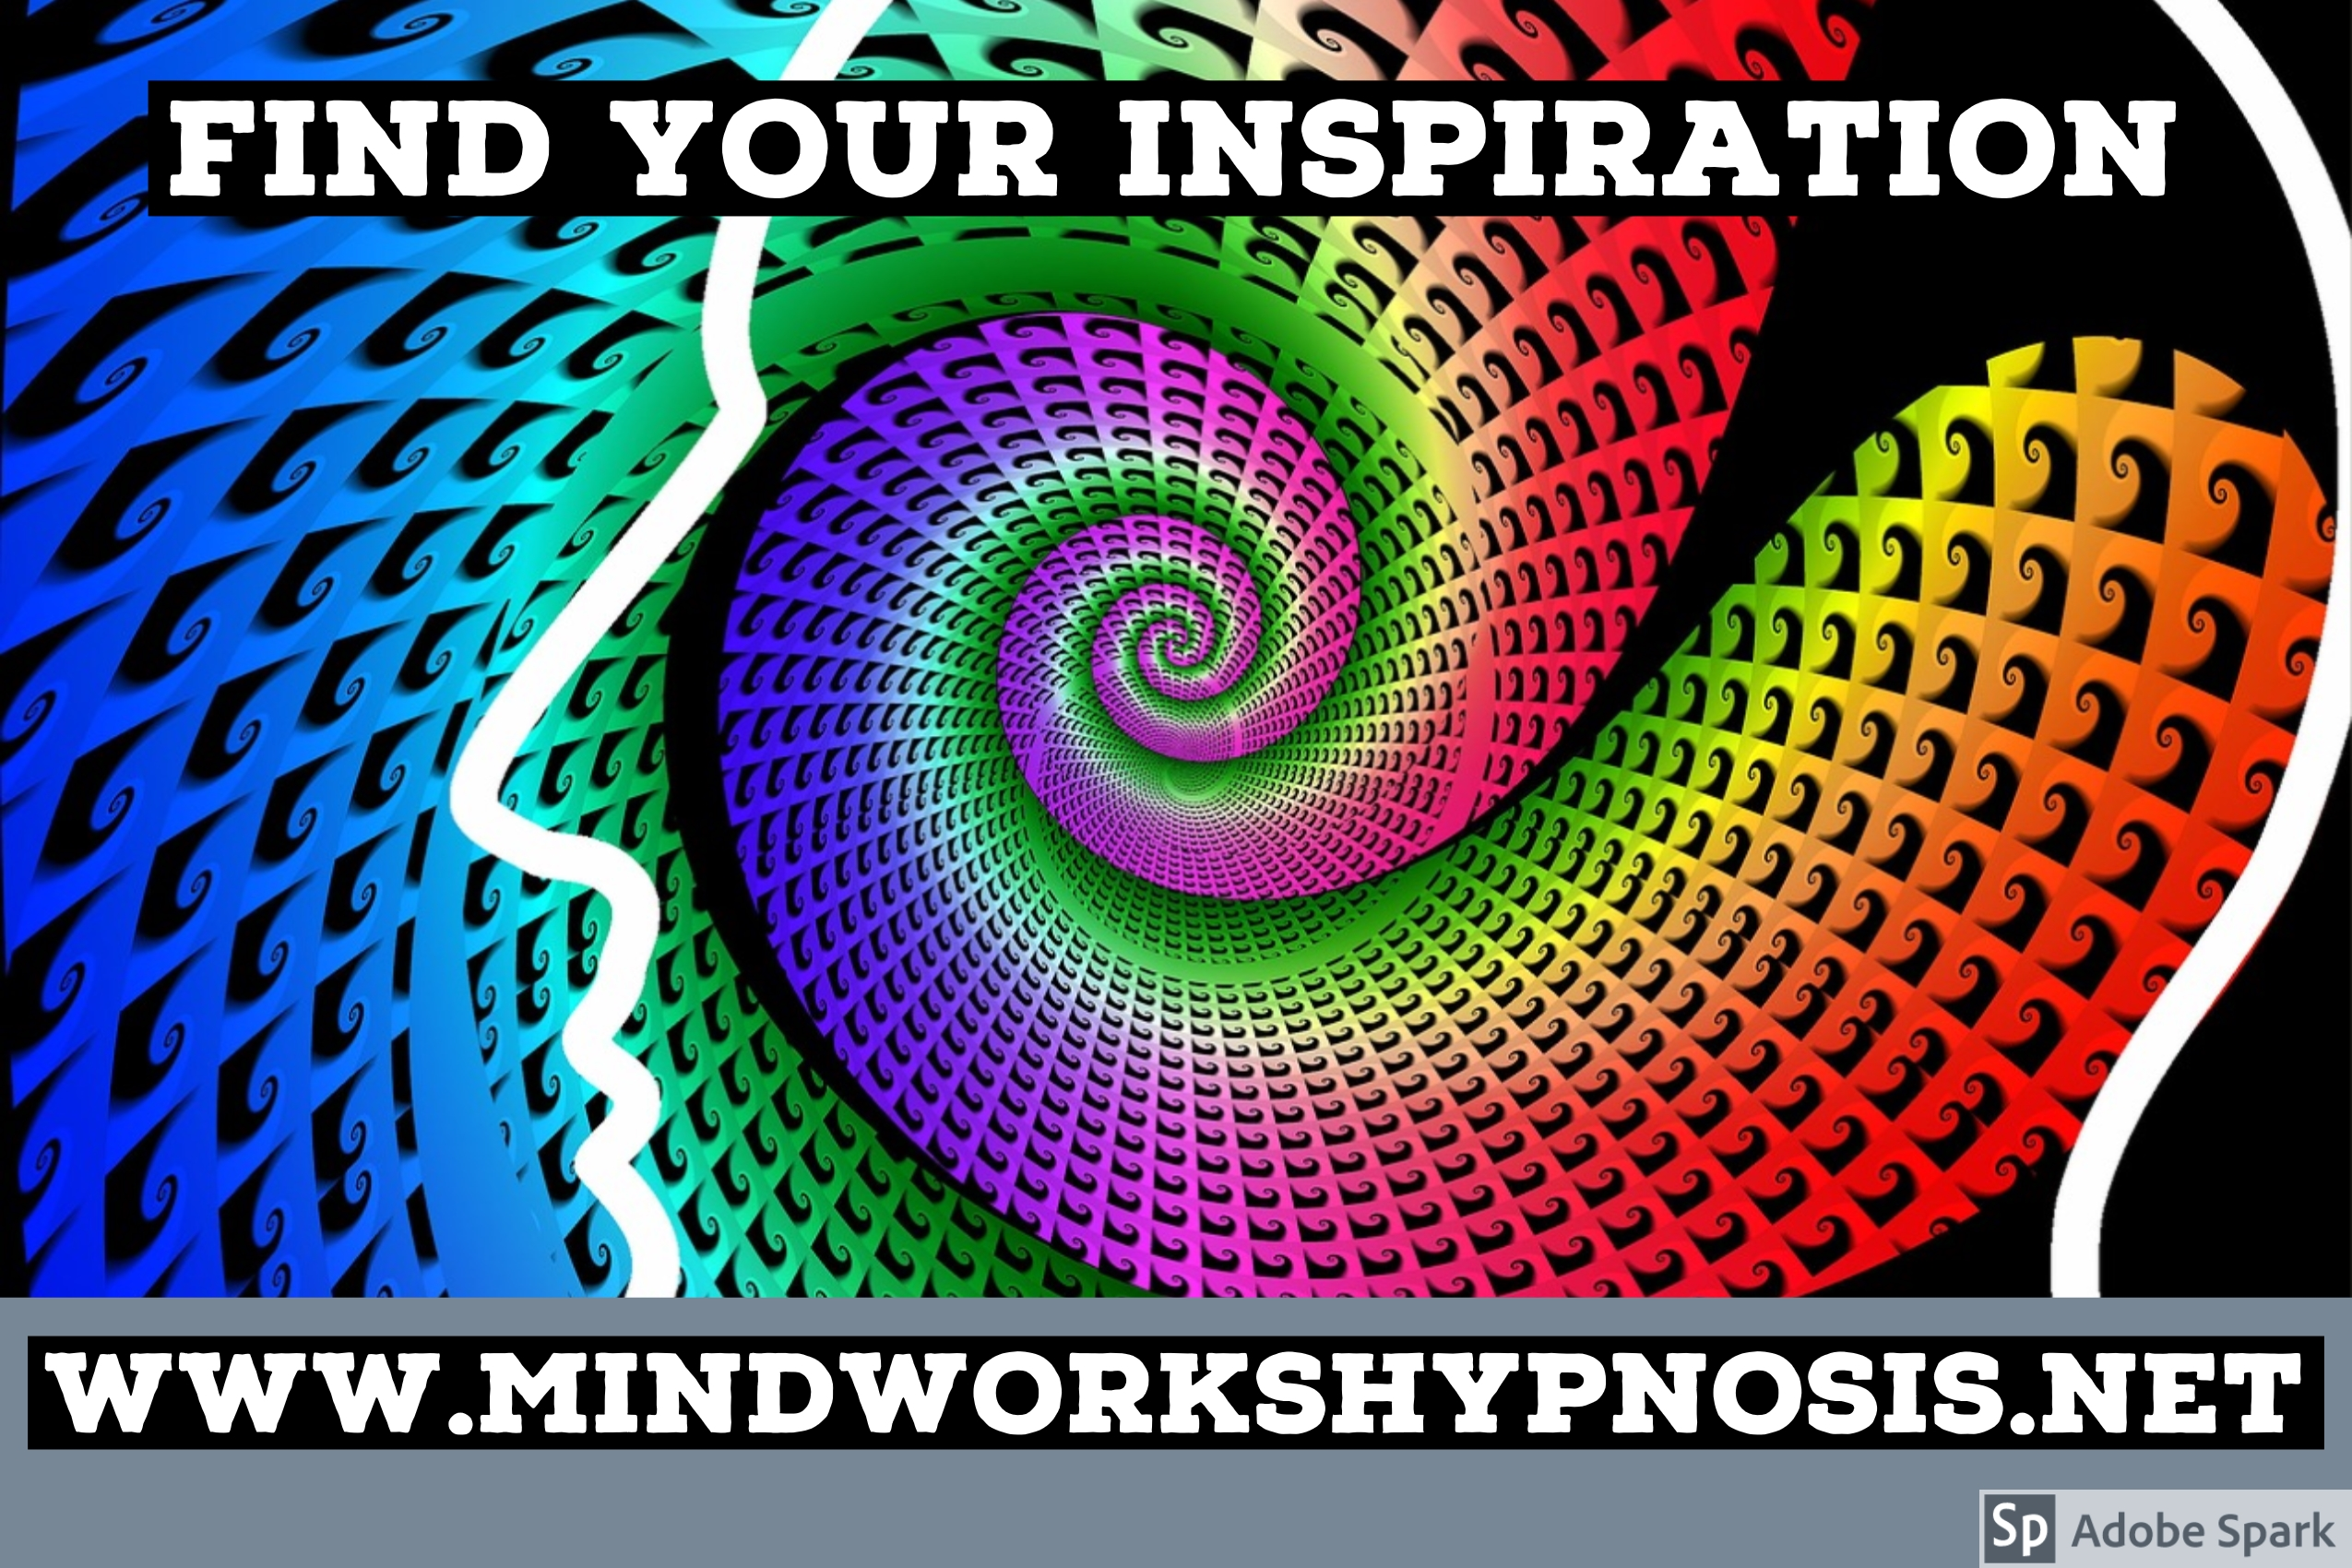 Find Your Inspiration with Mindworks Hypnosis & NLP Creative Thinking Services.